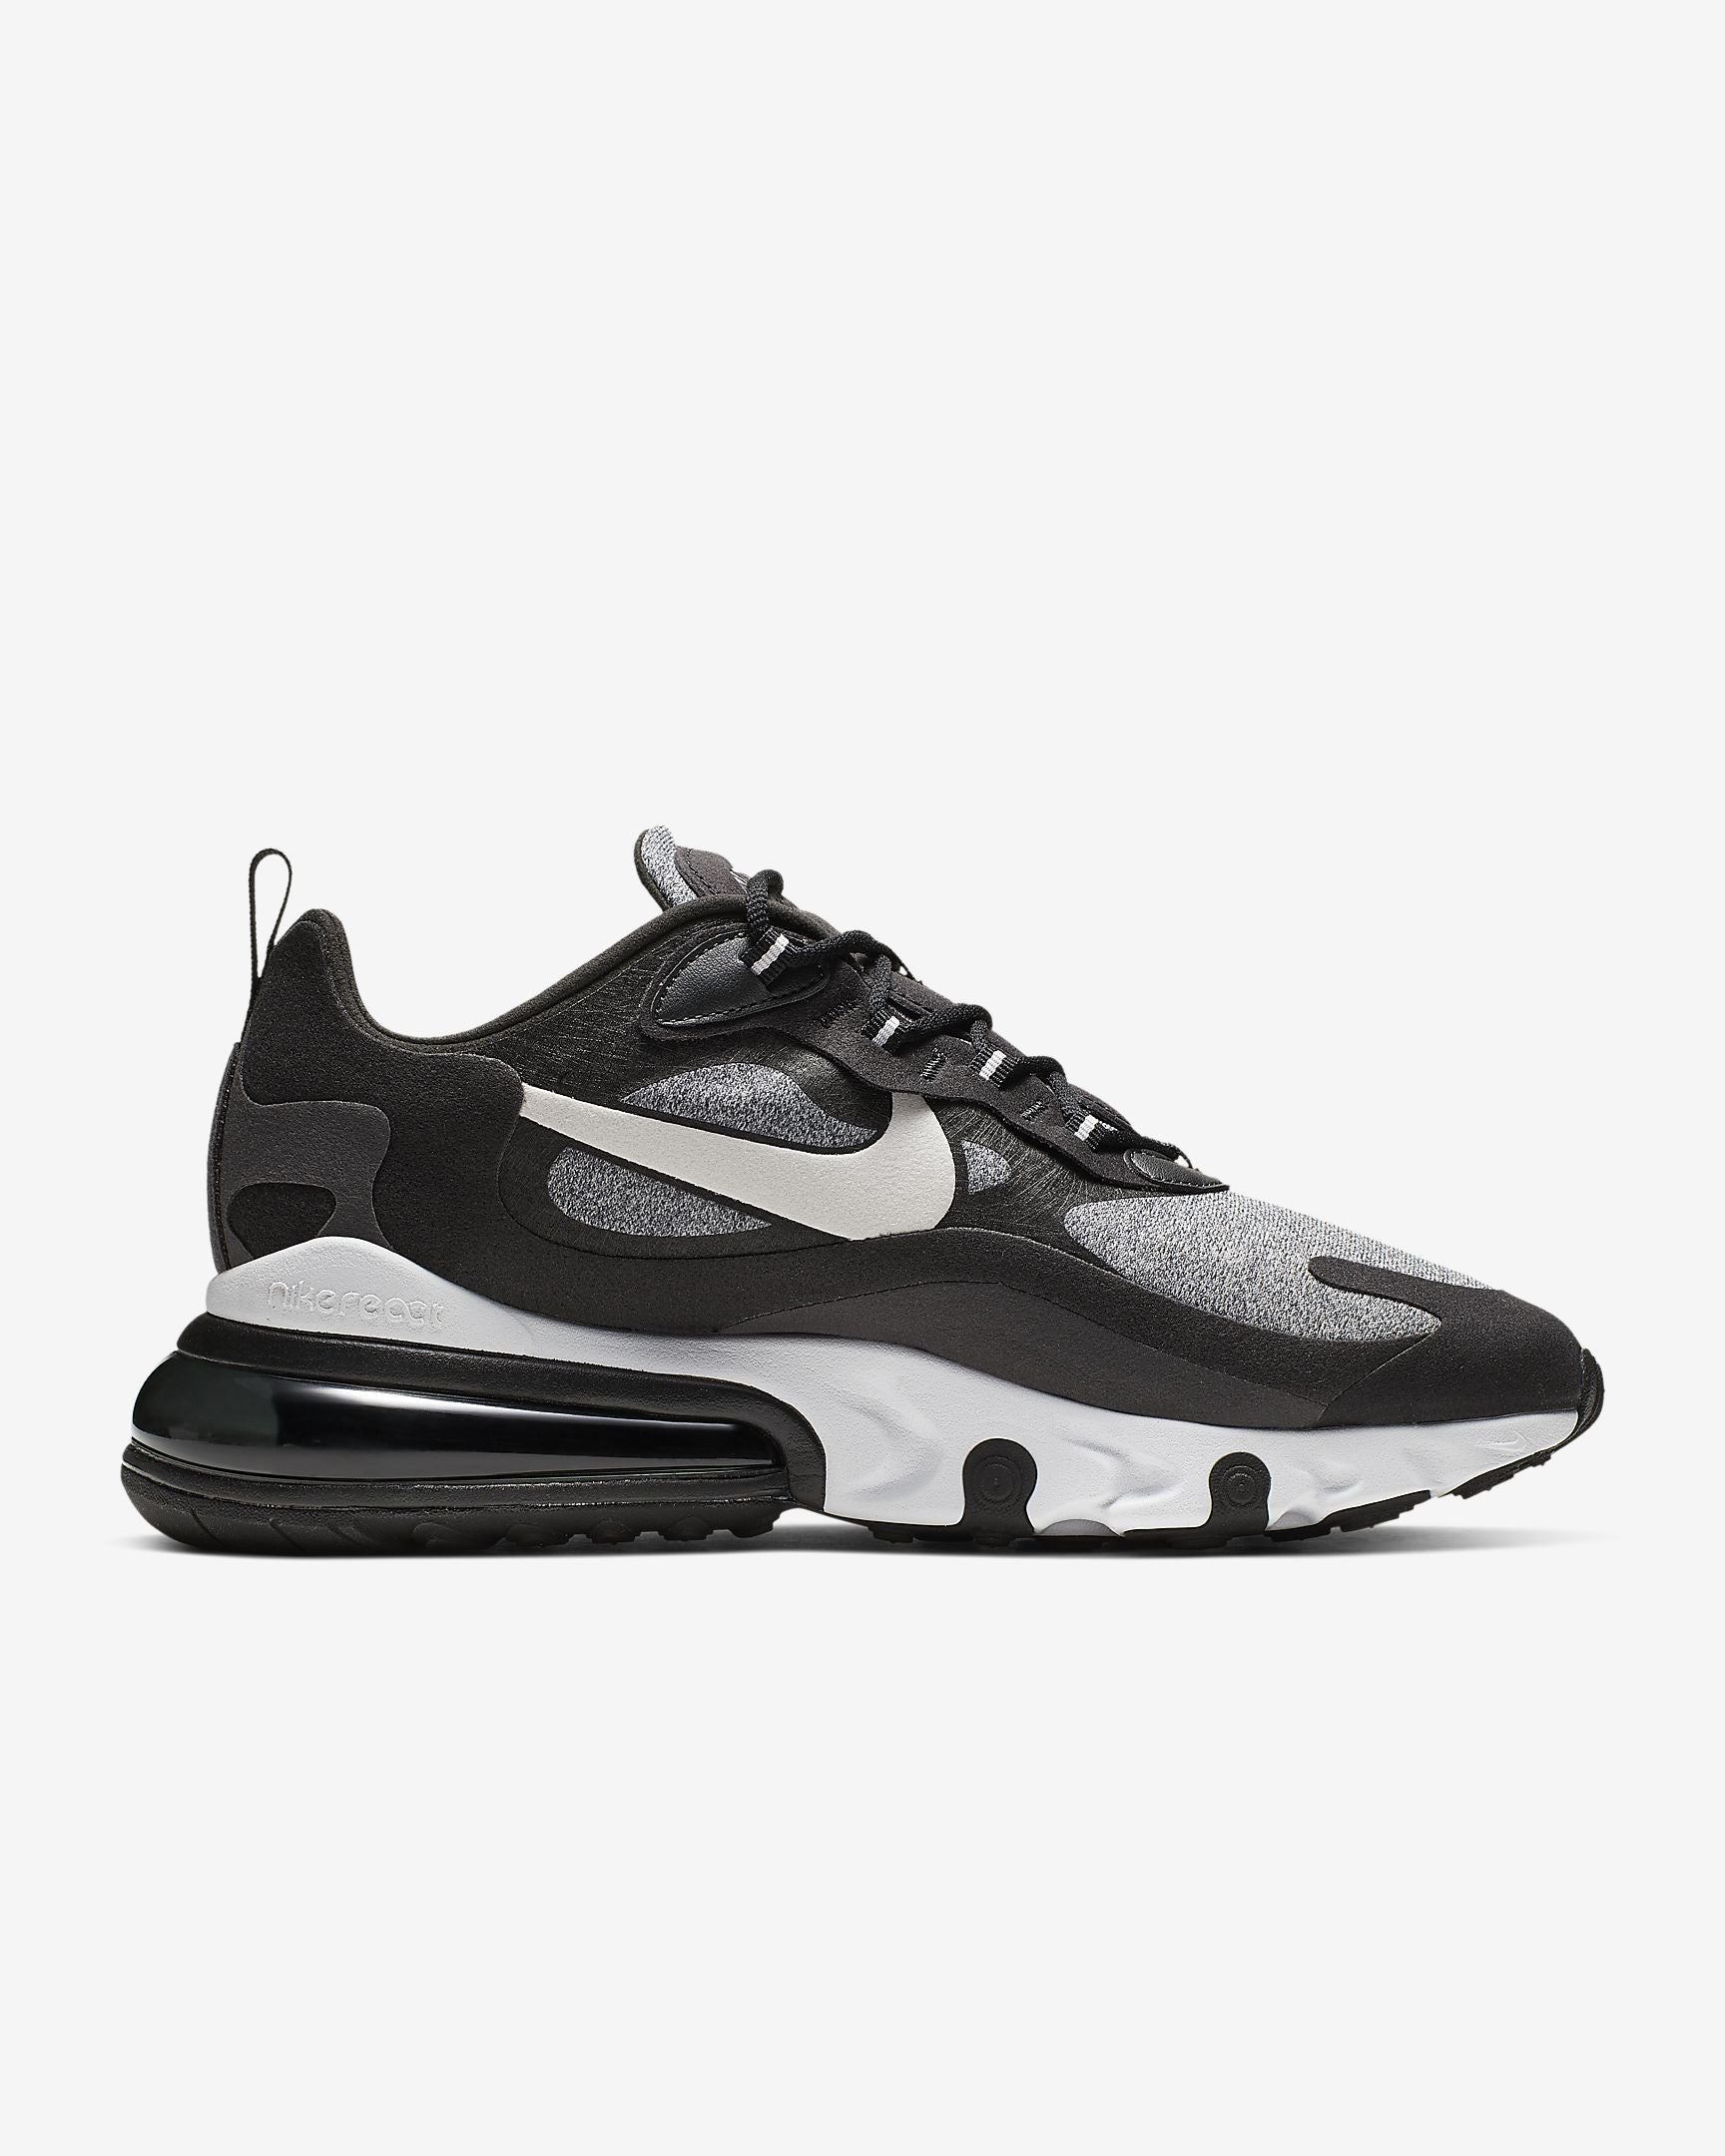 Air Max 270 React-Athletic Sneakers-Nike-streetwear-sneakers-fashion-Coda & Cade